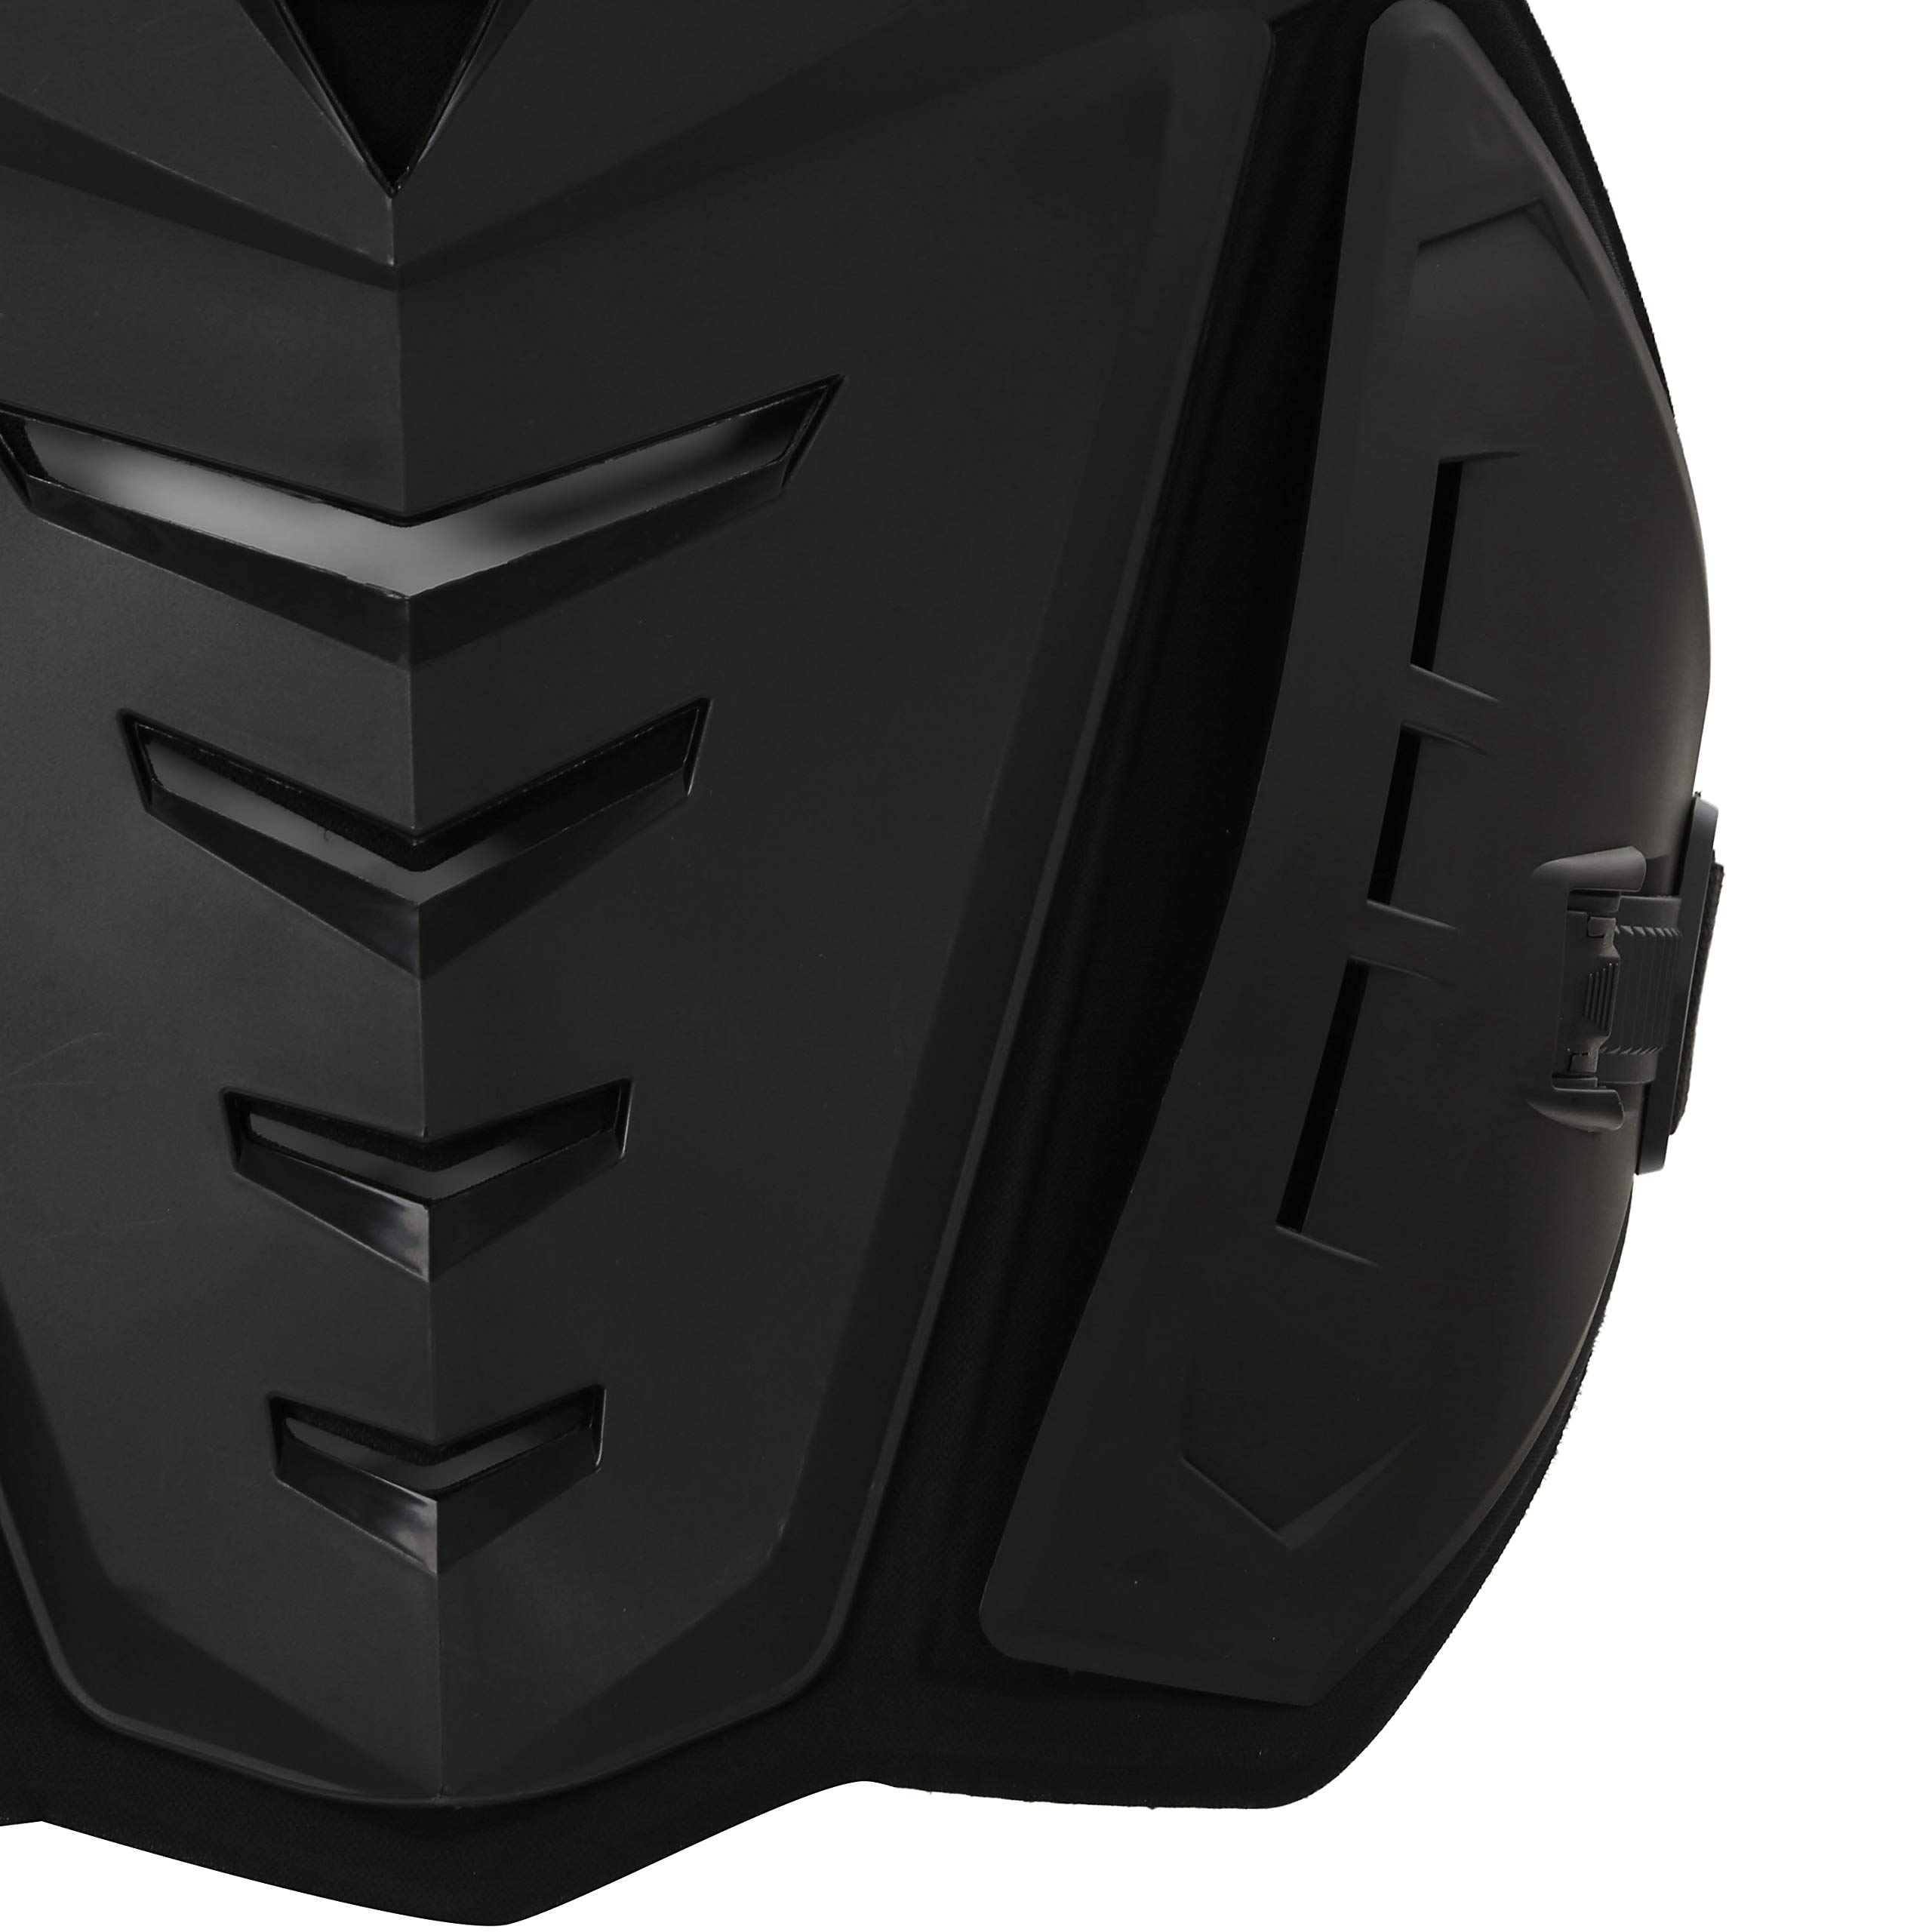 OHMOTOR Chest Back Protector Motorcycle Armor Vest Motorcycle Riding Chest Armor (Black) by OHMOTOR (Image #6)